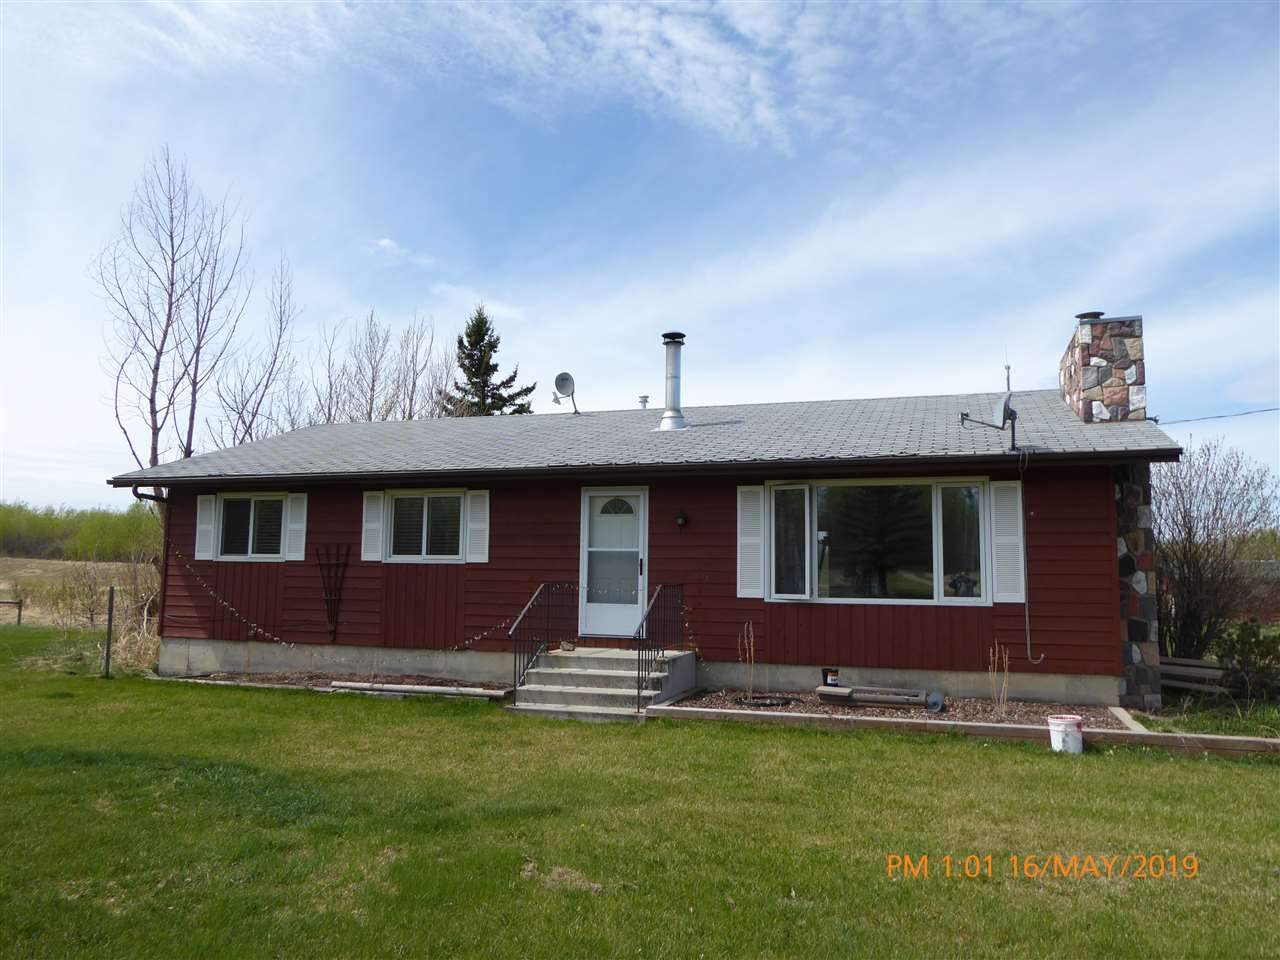 Fall Special @**$399,900**! Great Price for a Great Acreage! Settle into this fine acreage before Winter sets in! 21.83 Acres(Not in SubDivision), Horse set-up, fully-fenced and cross-fenced. 1456 Sq Ft, 3-Bedroom Bungalow(1978) has undergone considerable renovations recently to the rather large Country Kitchen and the spacious Living Room on the main floor, which also features the 3 Bedrooms including Master with 2-piece Ensuite. The basement has additional renovations currently underway. Ideally the property is currently set up for horses with rotating pastures, horse shelters, barn, hay shed, waterers, round pen and corrals. Centrally located in the Spilstead area of Beaver County and only 35 minutes to Edmonton & Sherwood Park. Also short commuting distance to Tofield and Camrose. Settle in before Winter sets in!